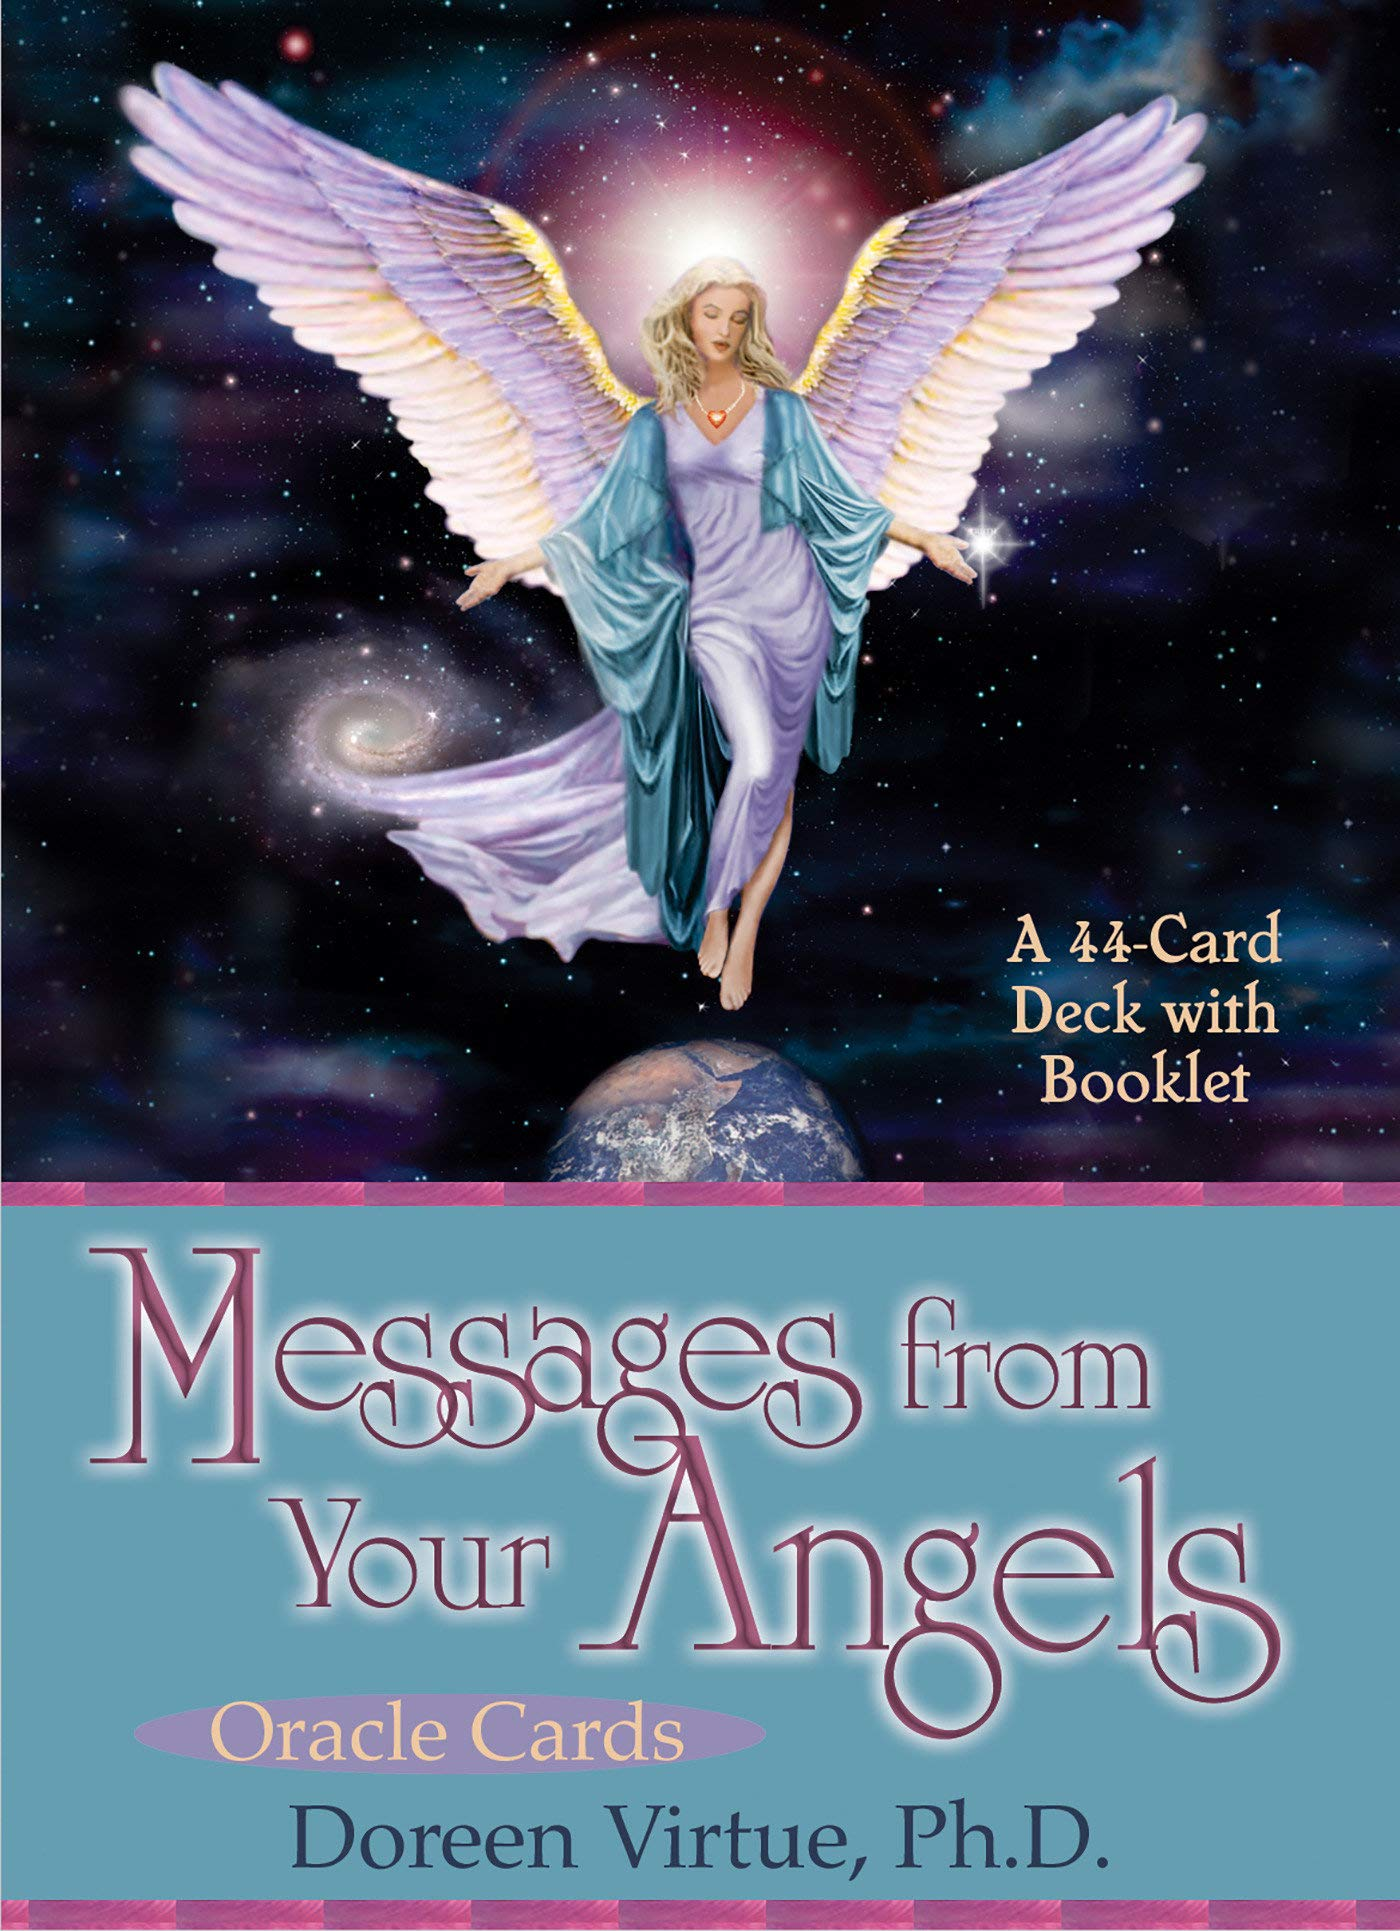 Messages From Your Angels Cards Cards – Mar 1 2002 Doreen Virtue Hay House Inc. 1561709069 8353709069